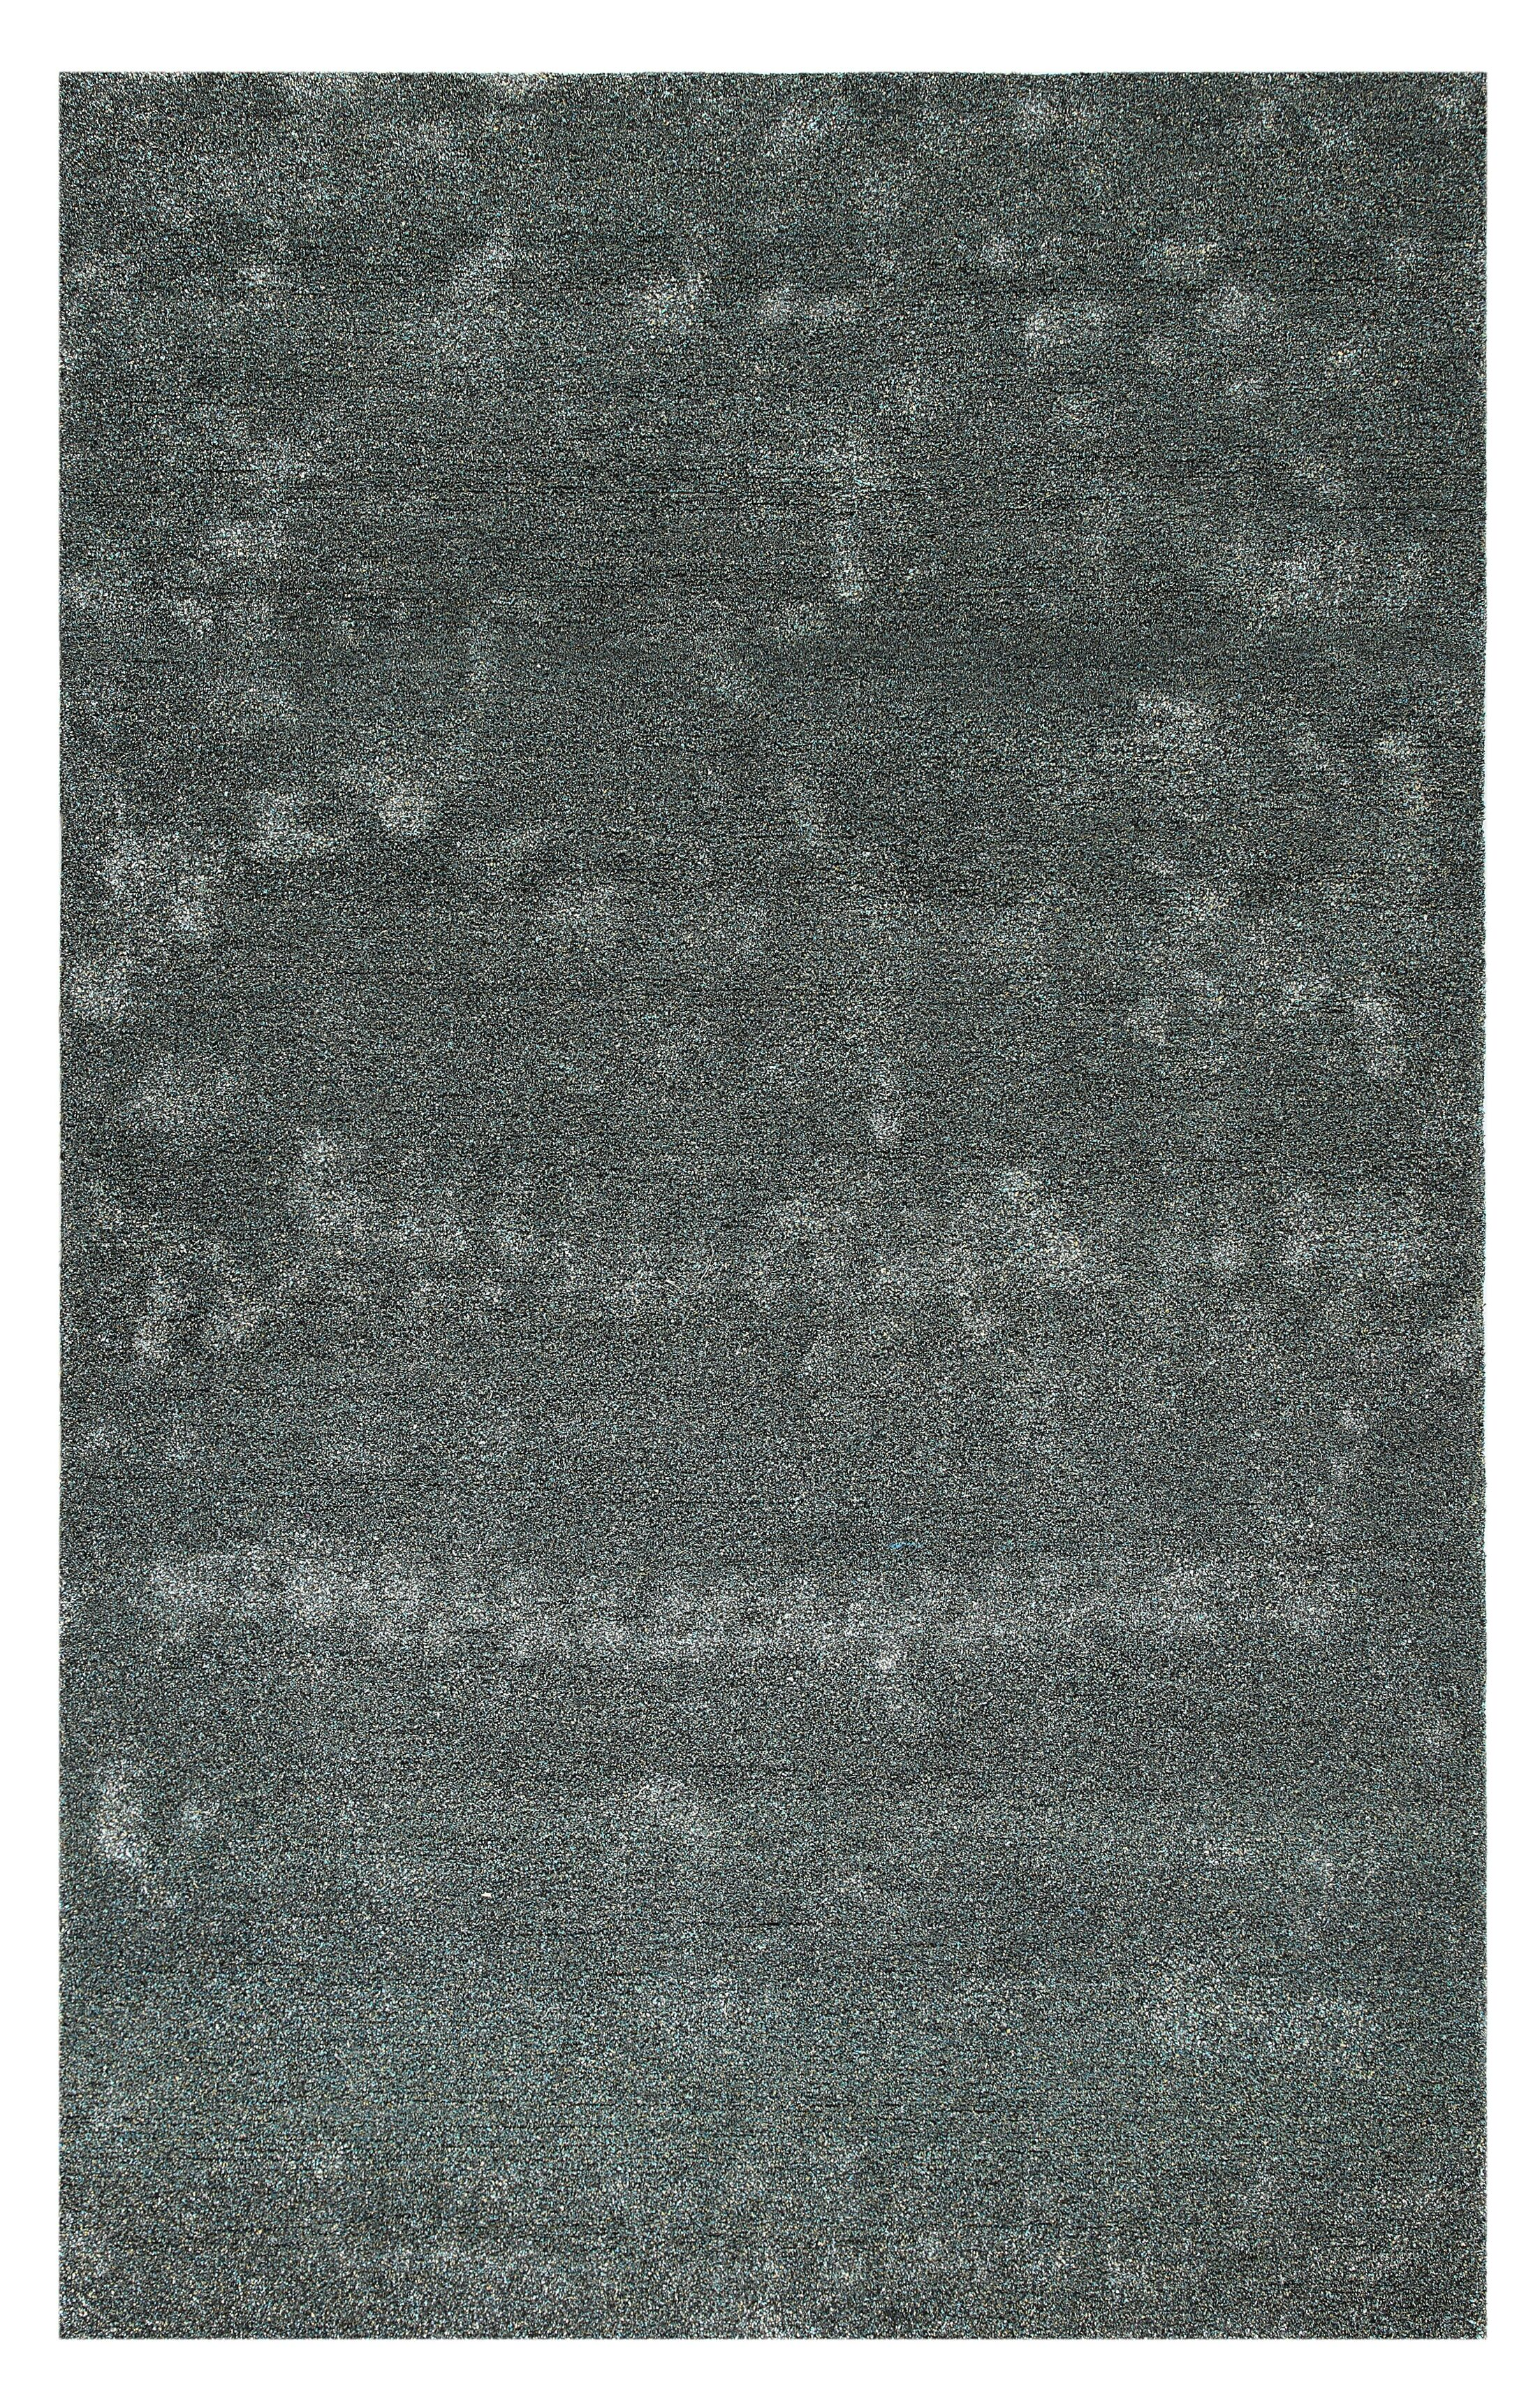 Meads Hand-Tufted Gray Indoor/Outdoor Use Area Rug Rug Size: Rectangle 6' x 9'